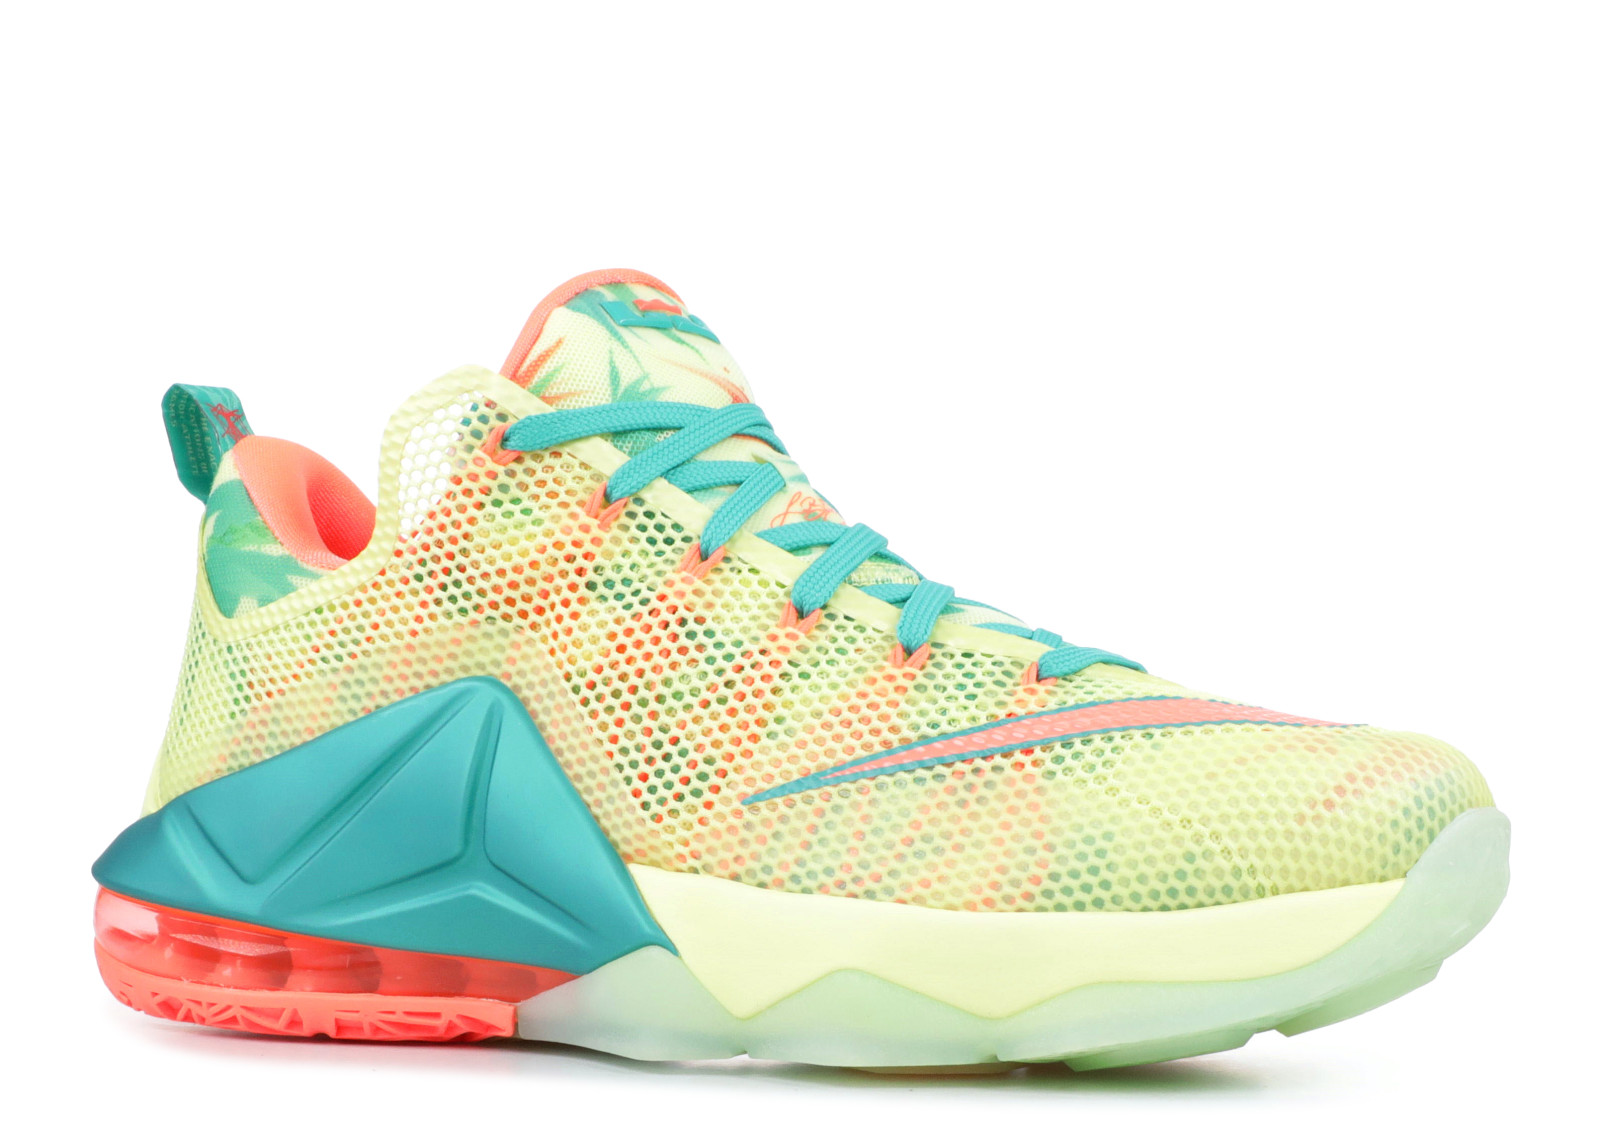 low priced 8e1d1 e49b0 Nike Lebron 12 Low Prm  Lebronold Palmer  - 776652-383 - Size 10